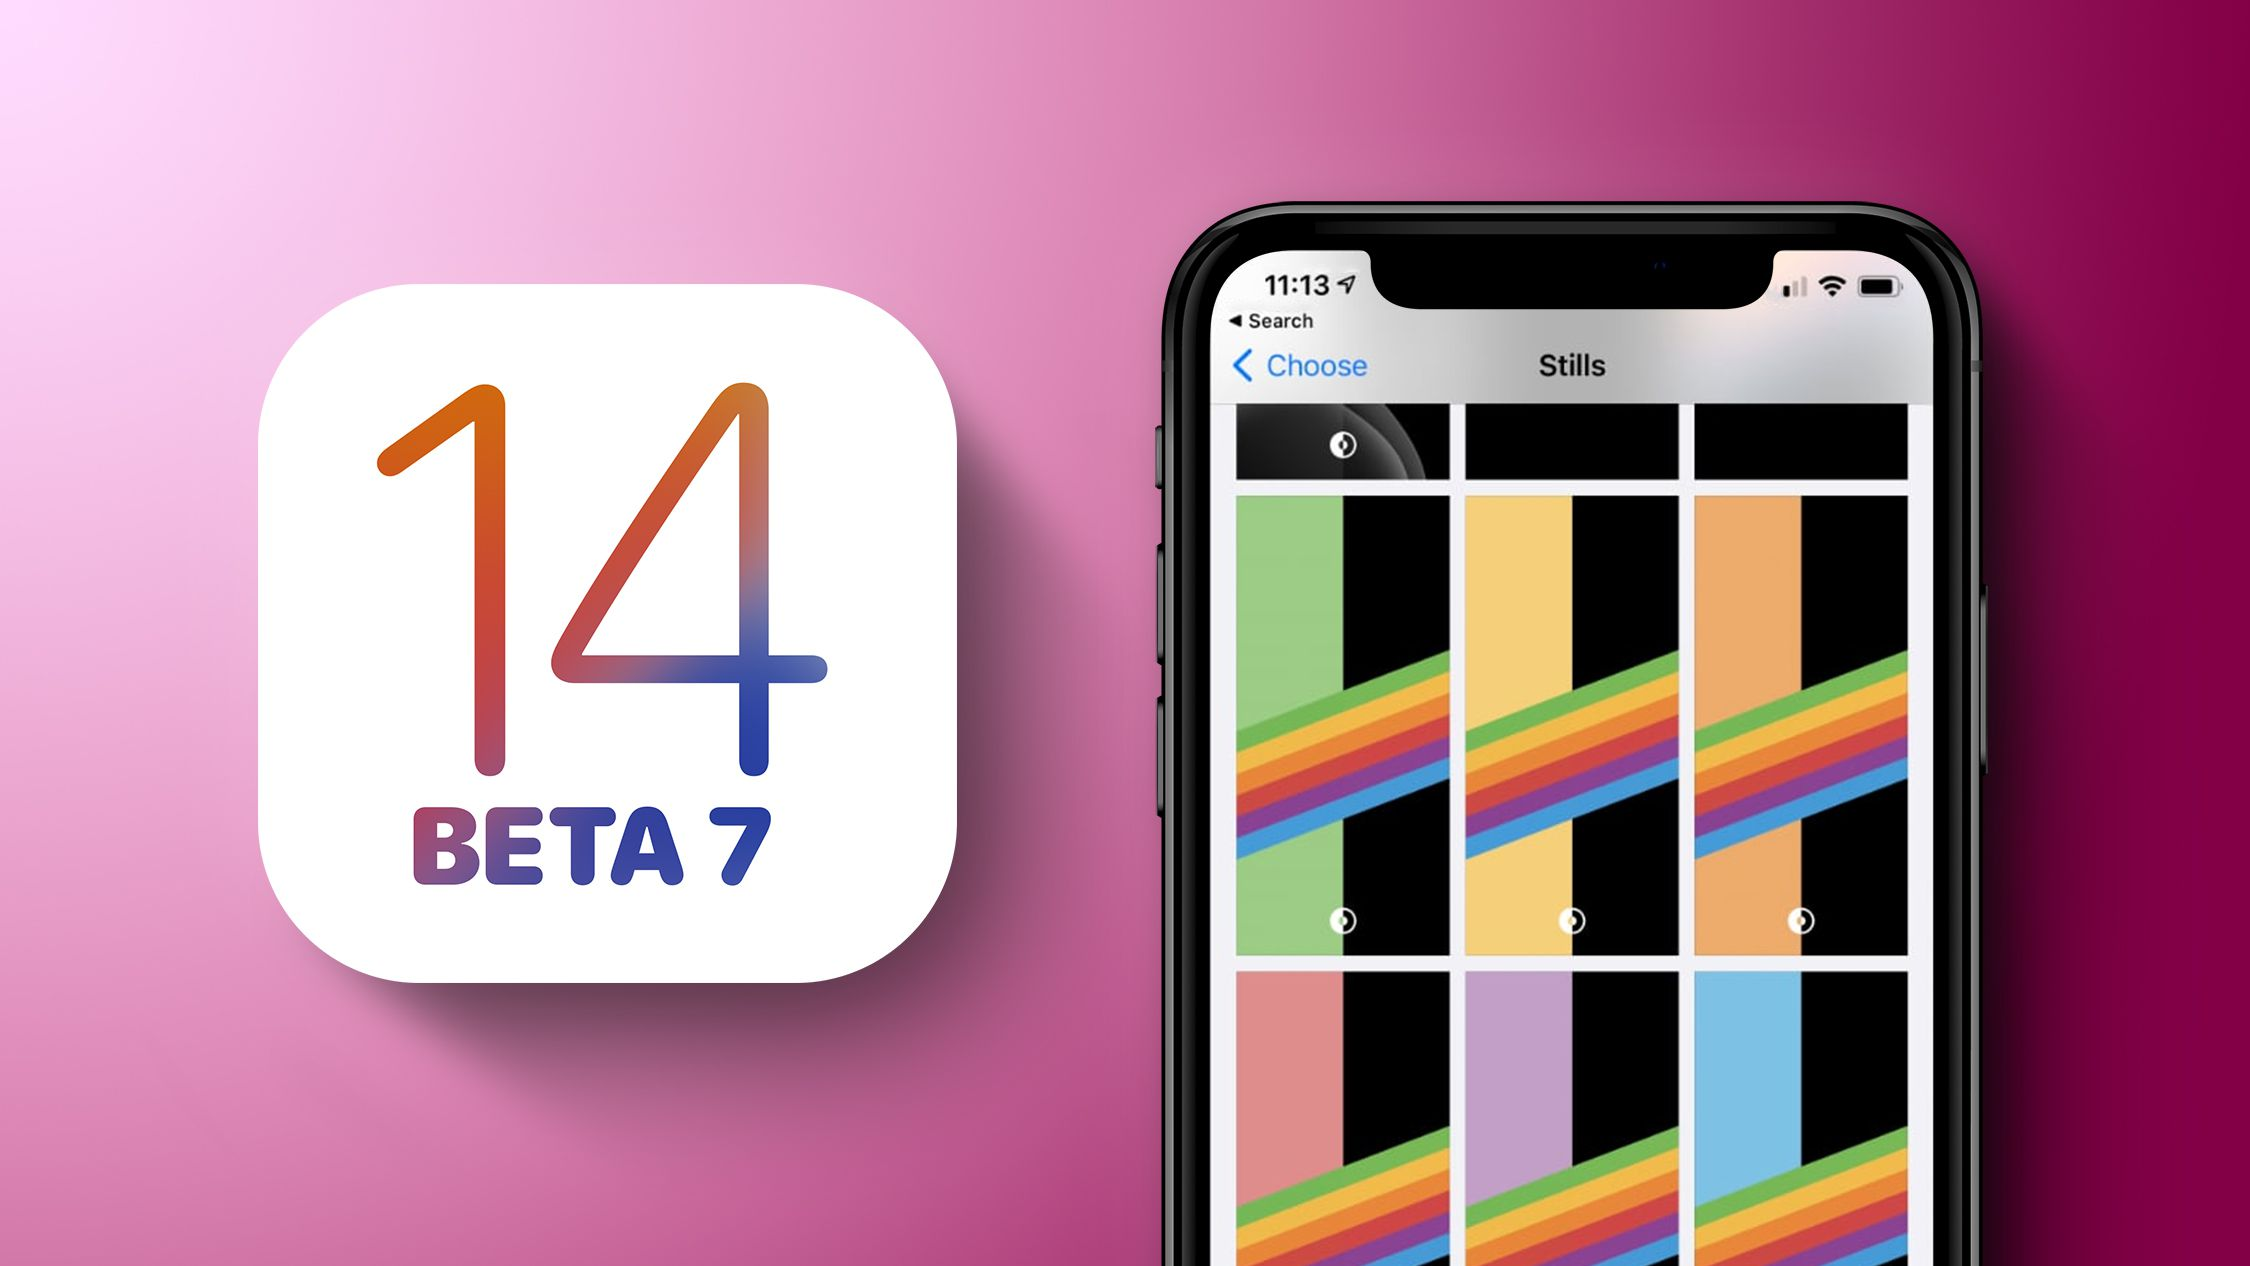 What S New In Ios 14 Beta 7 Dark Mode Rainbow Wallpapers App Library Tweaks Macrumors